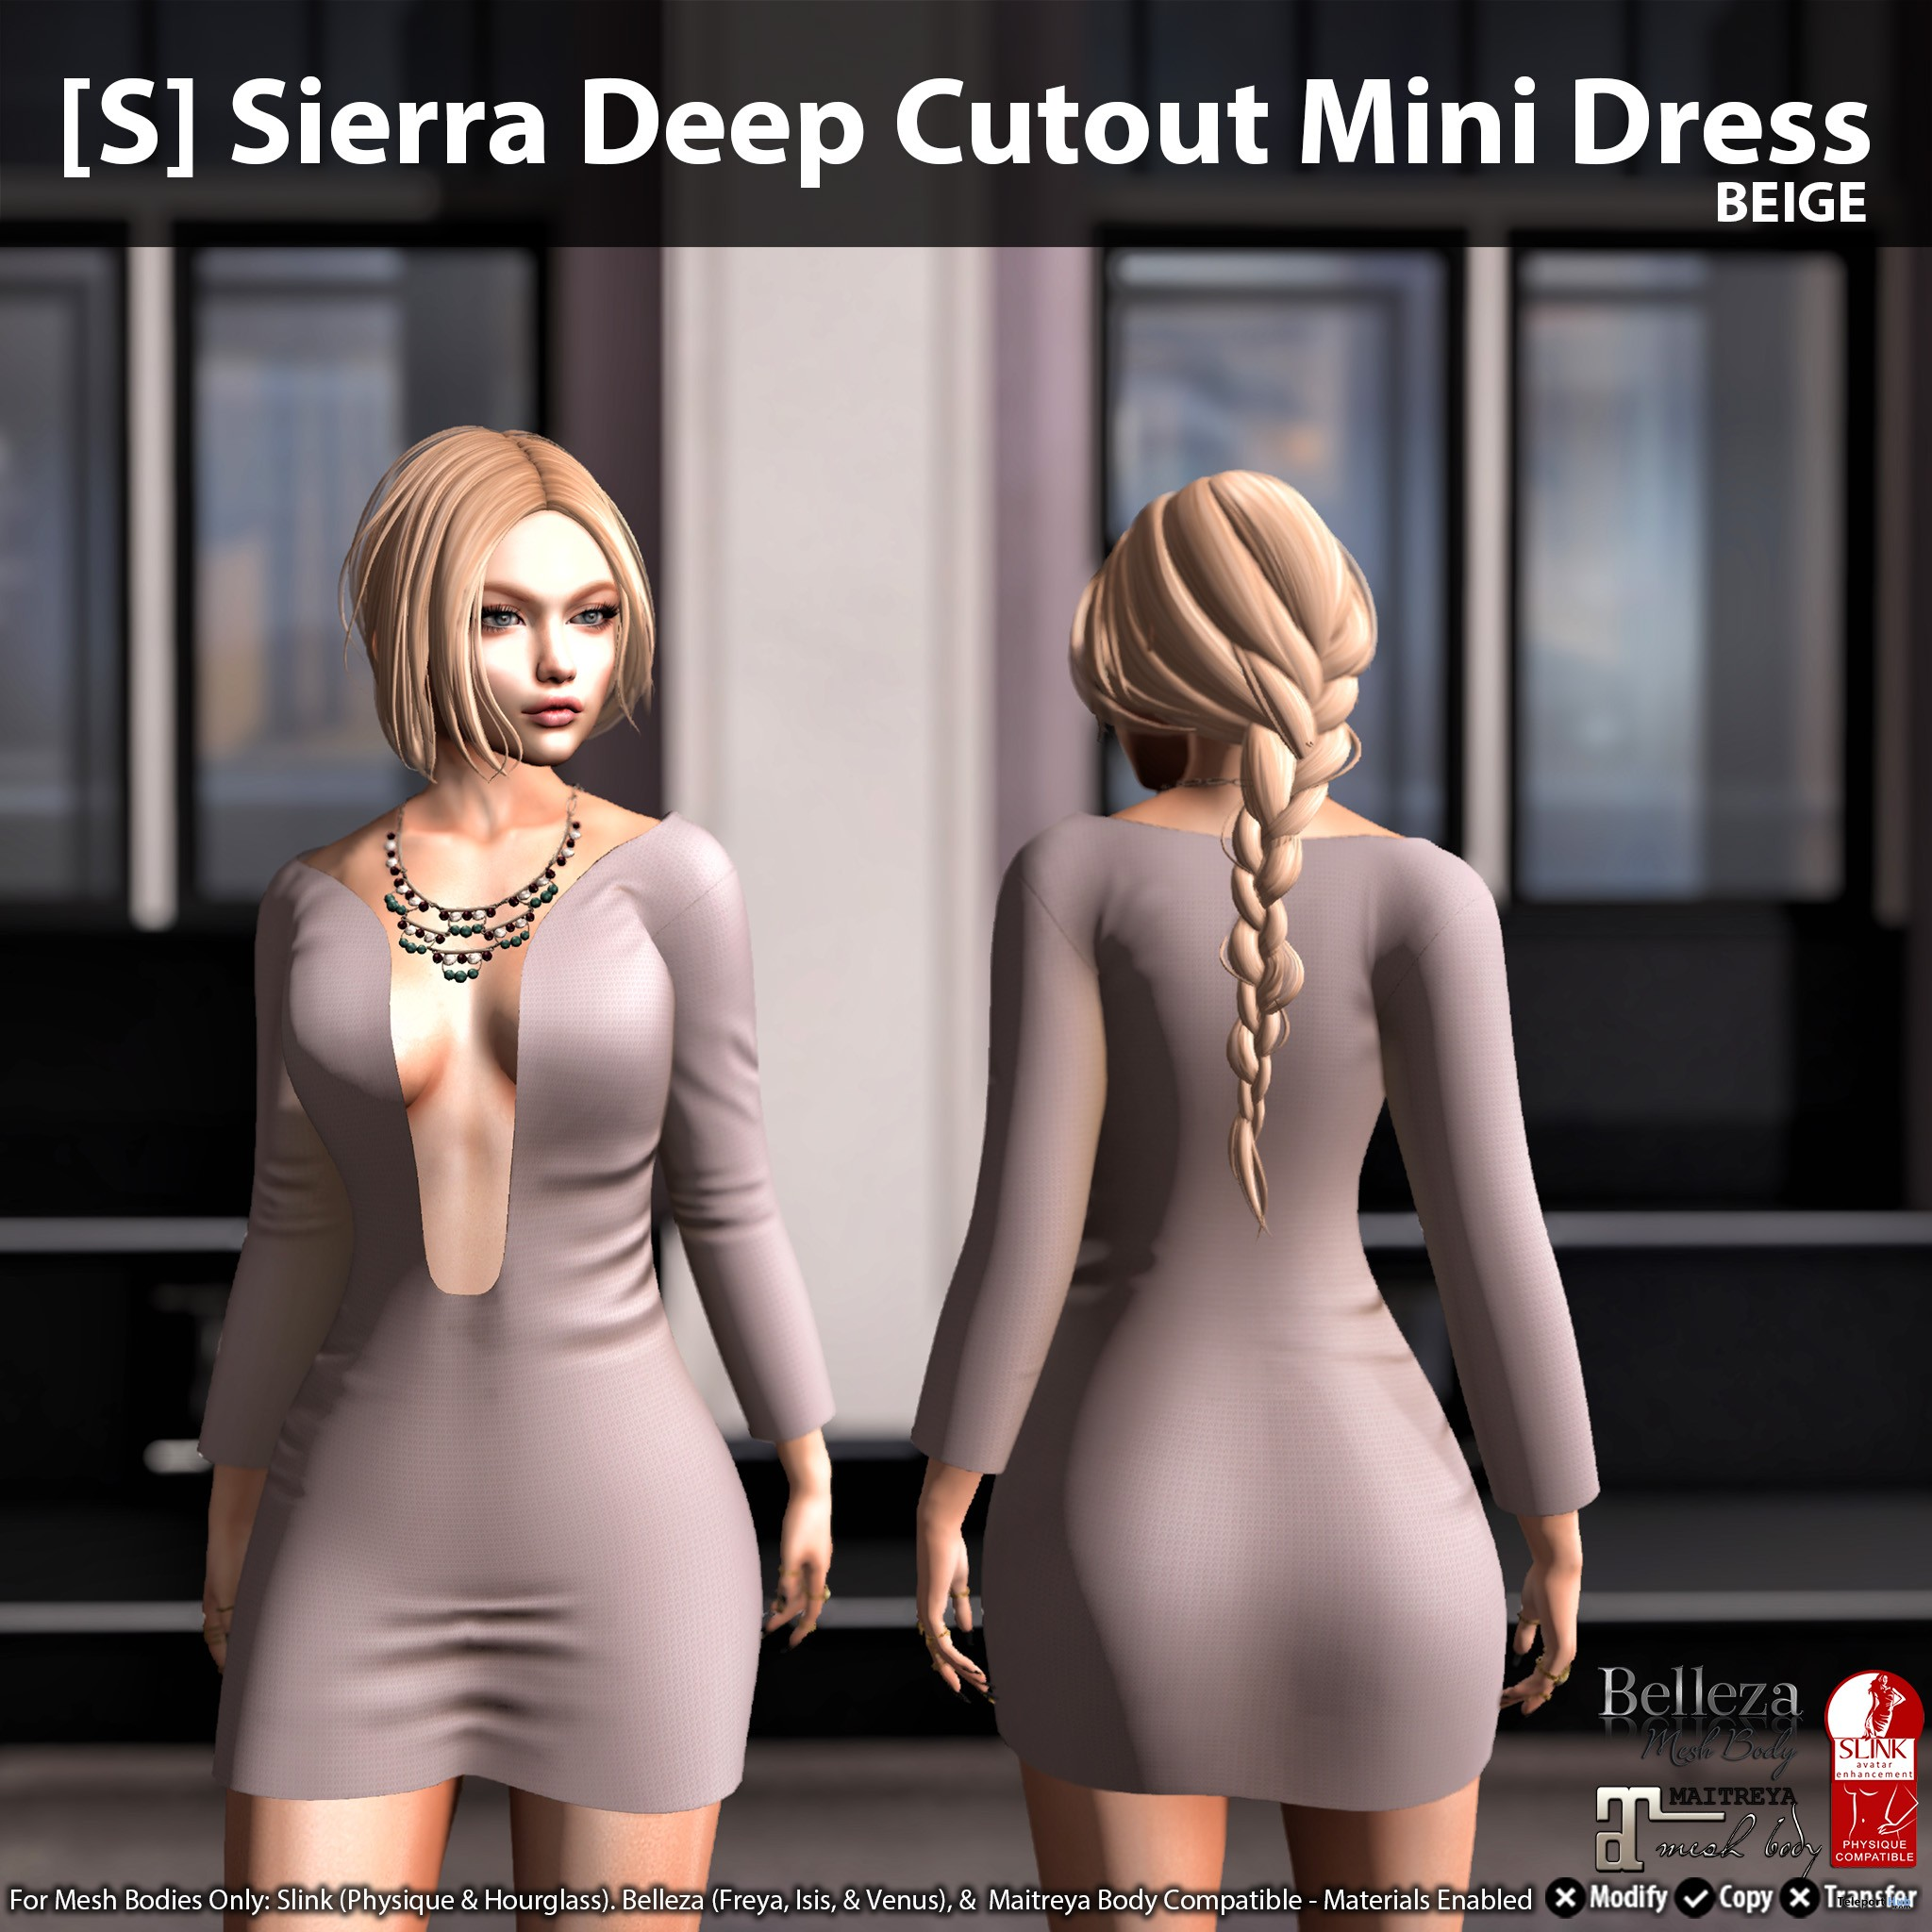 [S] Sierra Deep Cutout Mini Dress by [satus Inc] - Teleport Hub - teleporthub.com